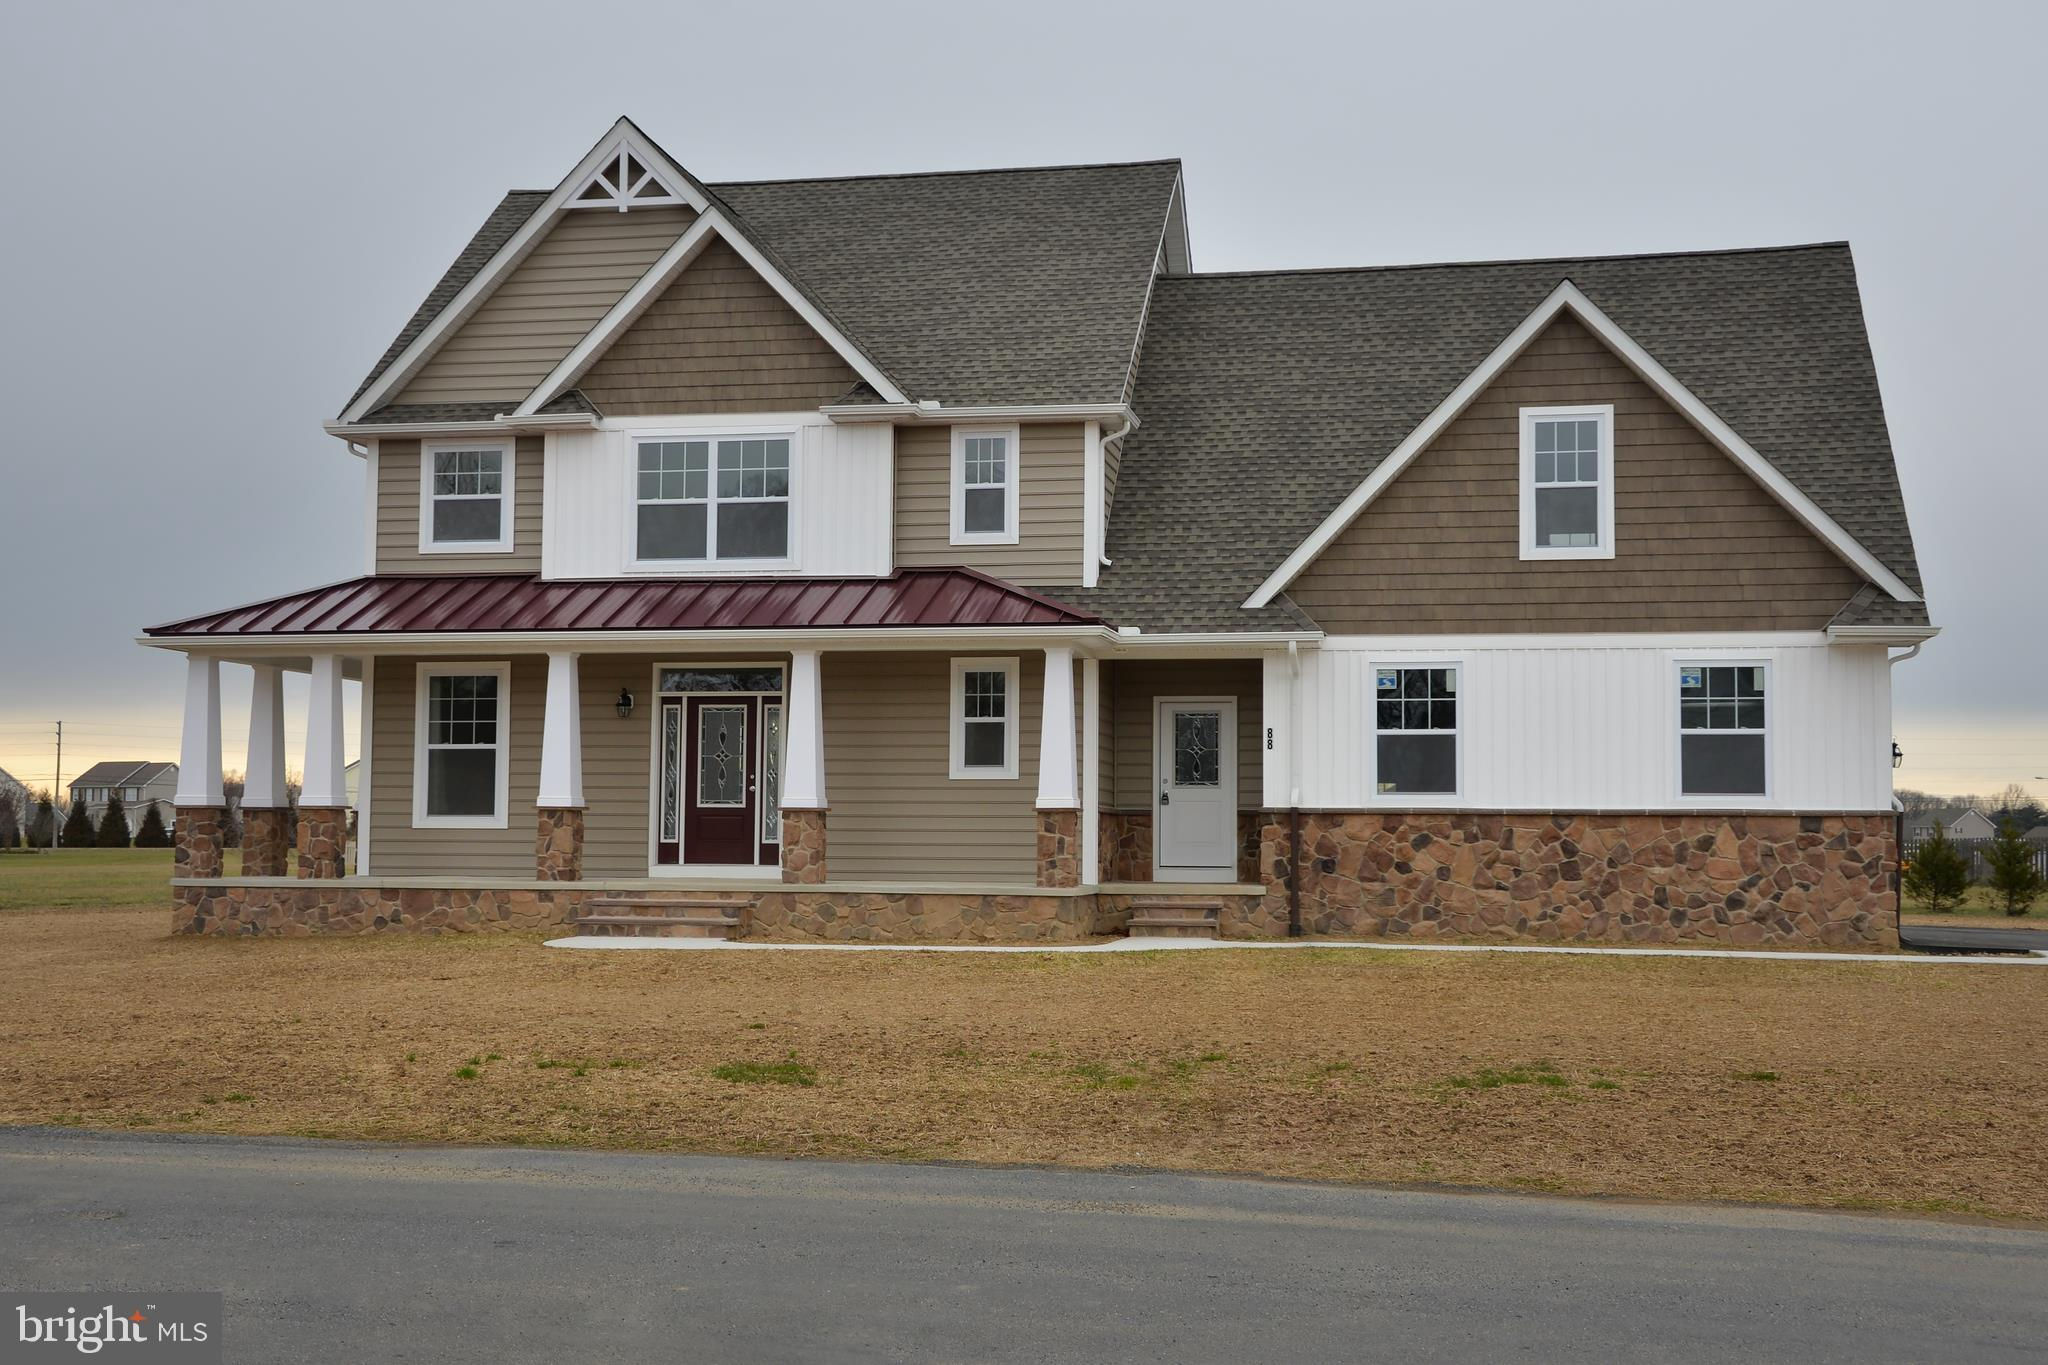 """To be built in the  community of Townsend Fields. Photo's may show upgrades. Lovely 2 story home with Second floor master, 3 additional bedrooms and 3 and half bathrooms. Home comes standard with well, septic, natural gas, concrete sidewalk, upgraded profession landscaping and stone veneer on some foundation. Interior standards include 42"""" cabinets, Cultured marble bath tops, Level A granite in the kitchen, and hardwood floors in the foyer. Tons of custom options in the beautiful home,  Call Sherrie today!"""